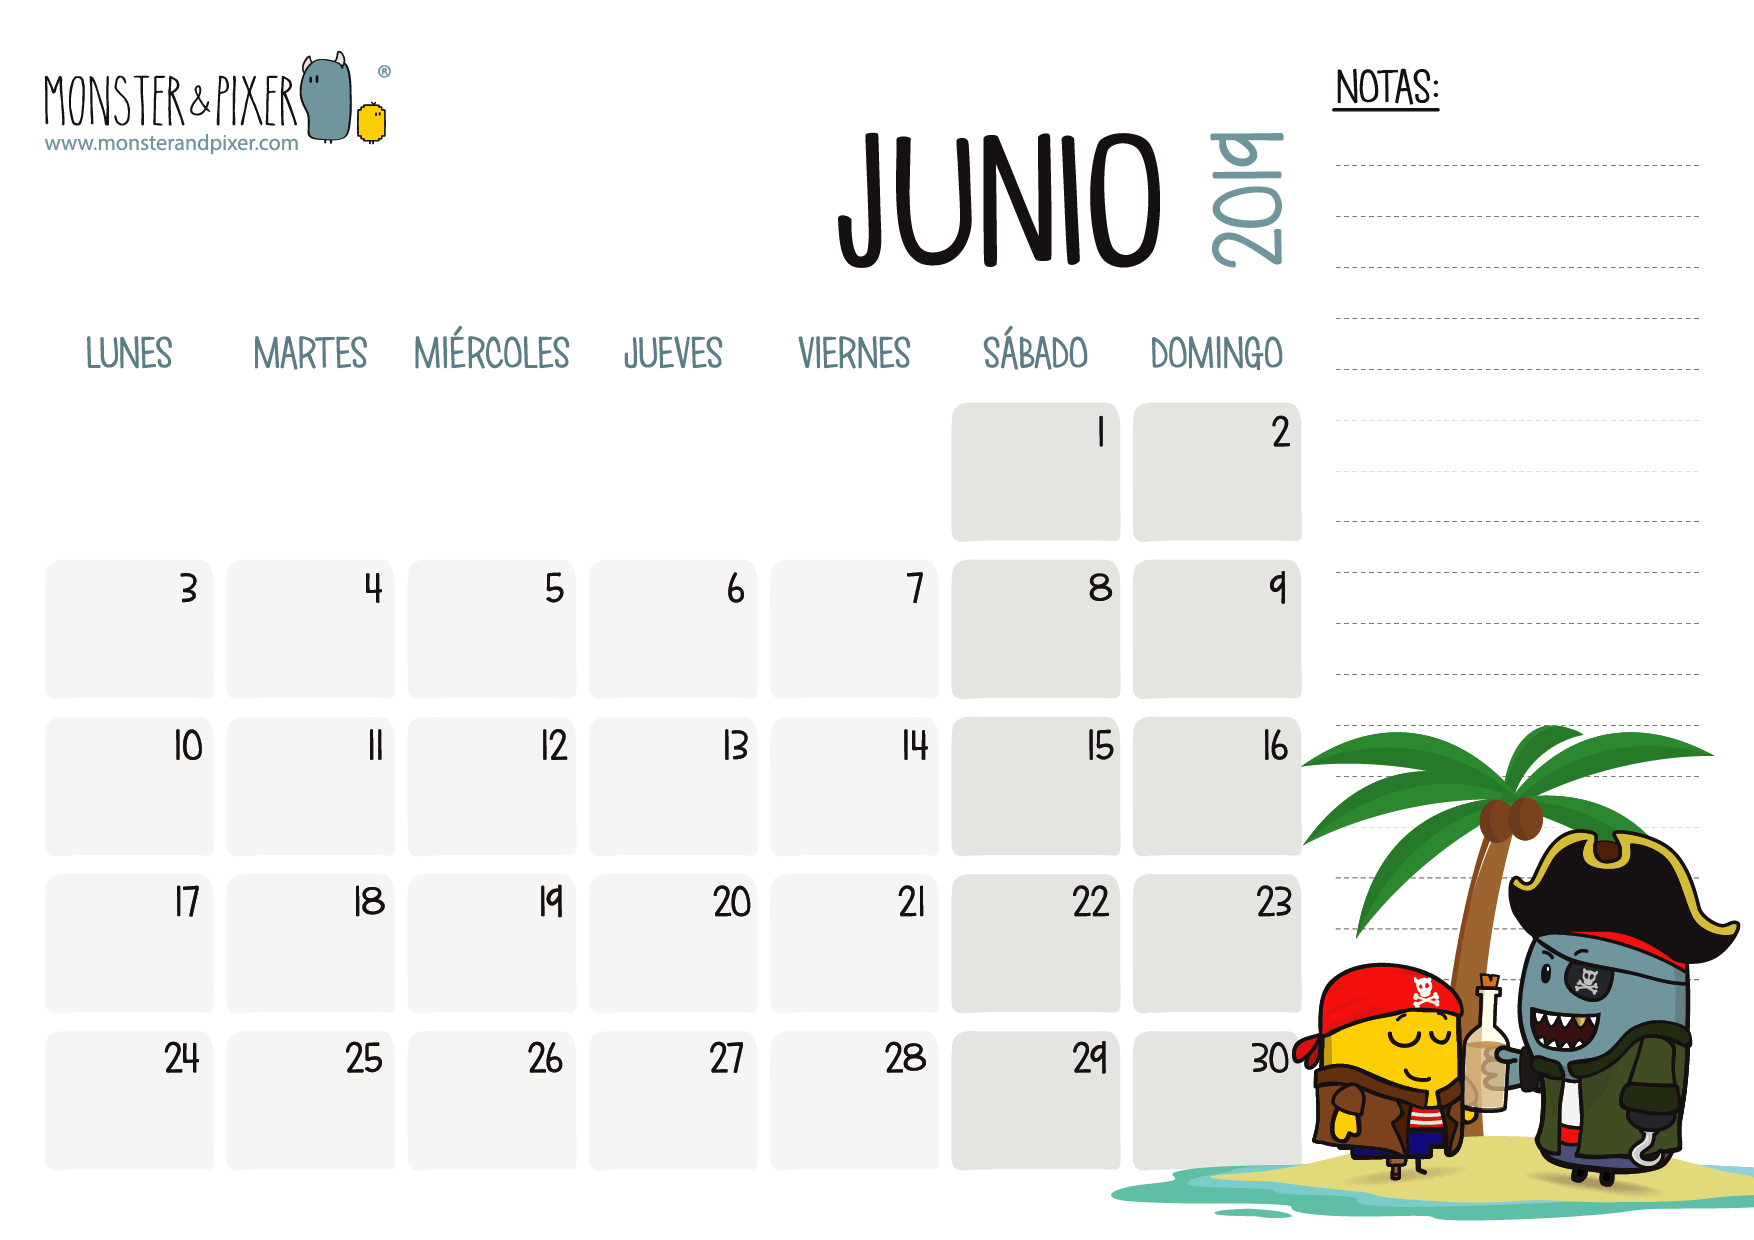 Junio 2019 Calendario.Descargable Gratuito Calendario Junio 2019 Monster Pixer